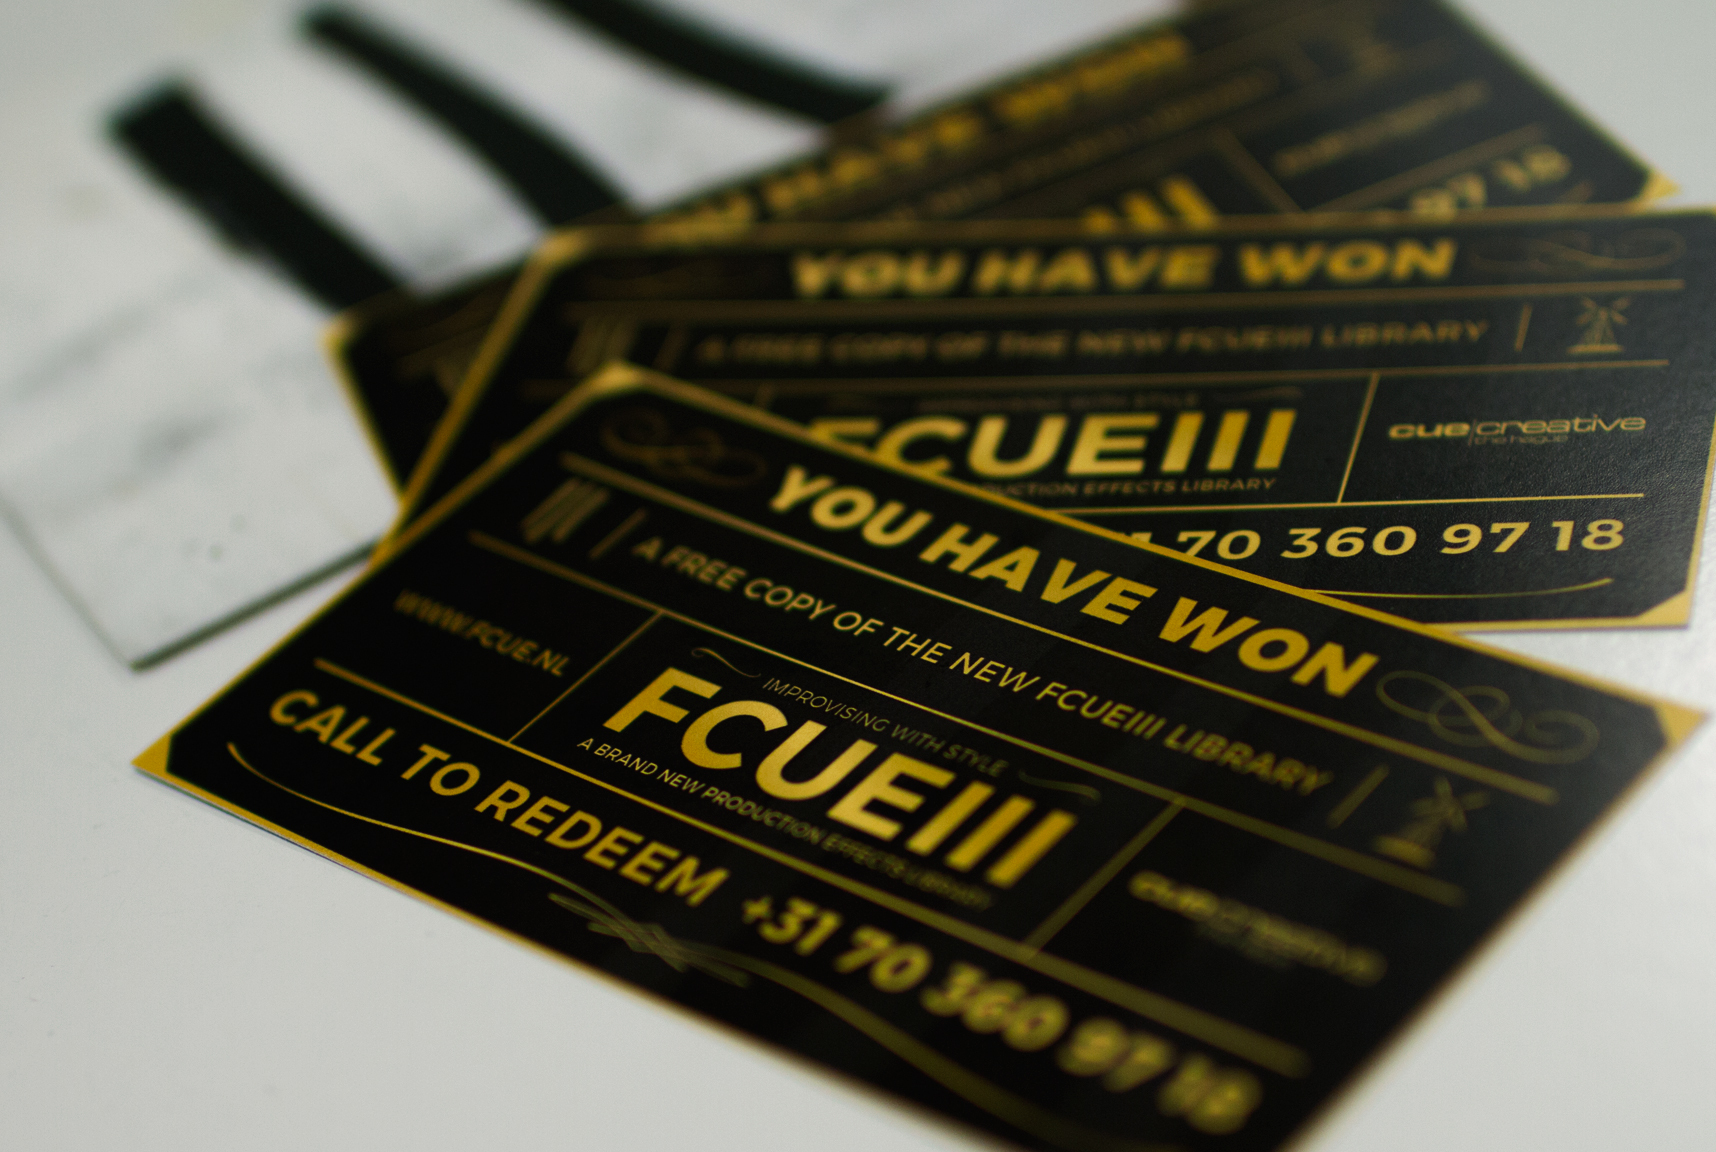 With a golden ticket, you receive a completely free FCUE III library for your usage